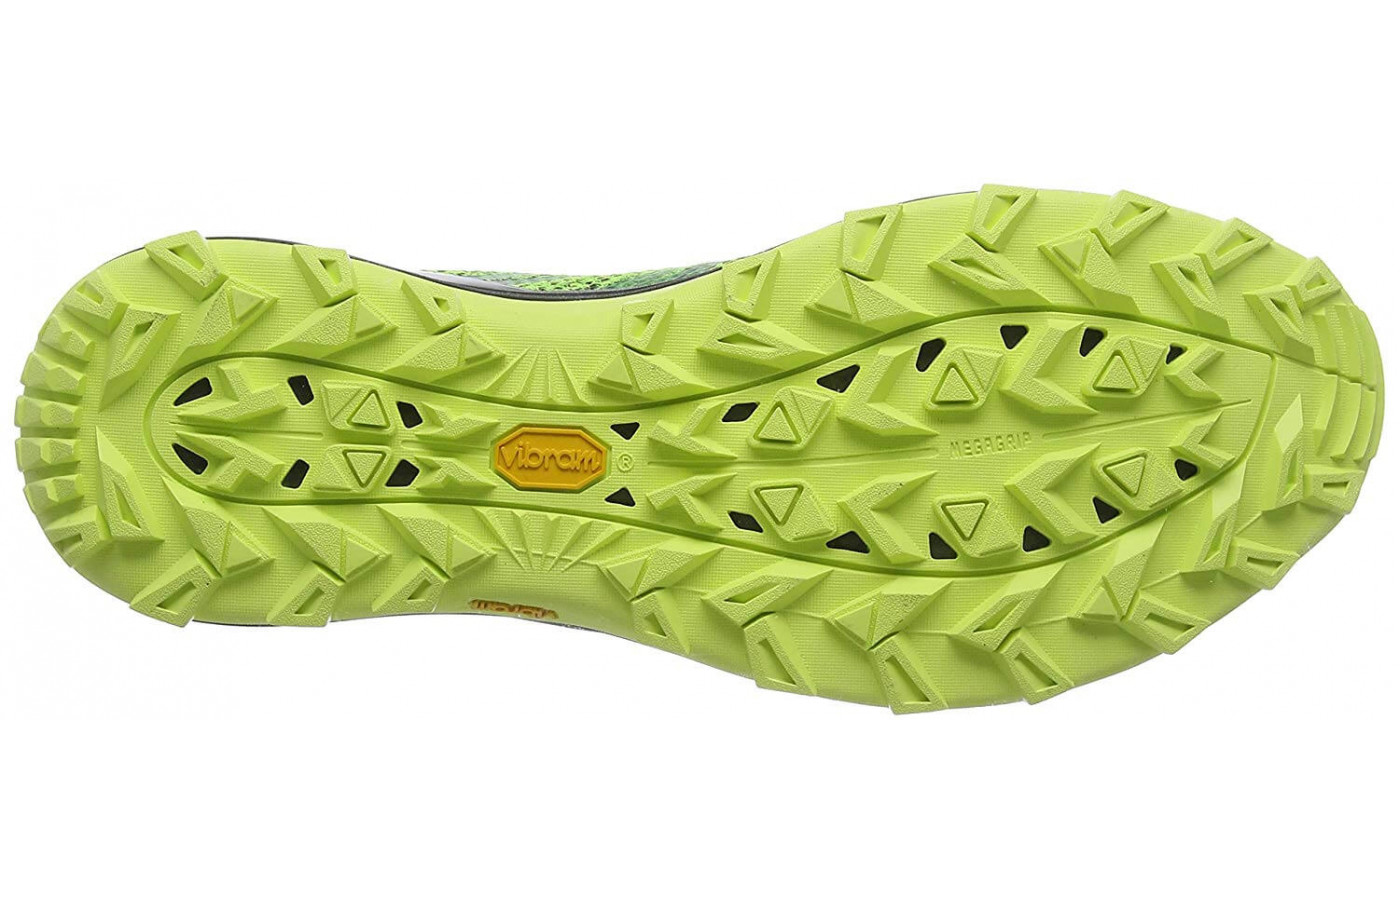 An in depth review of the Merrell Momentous